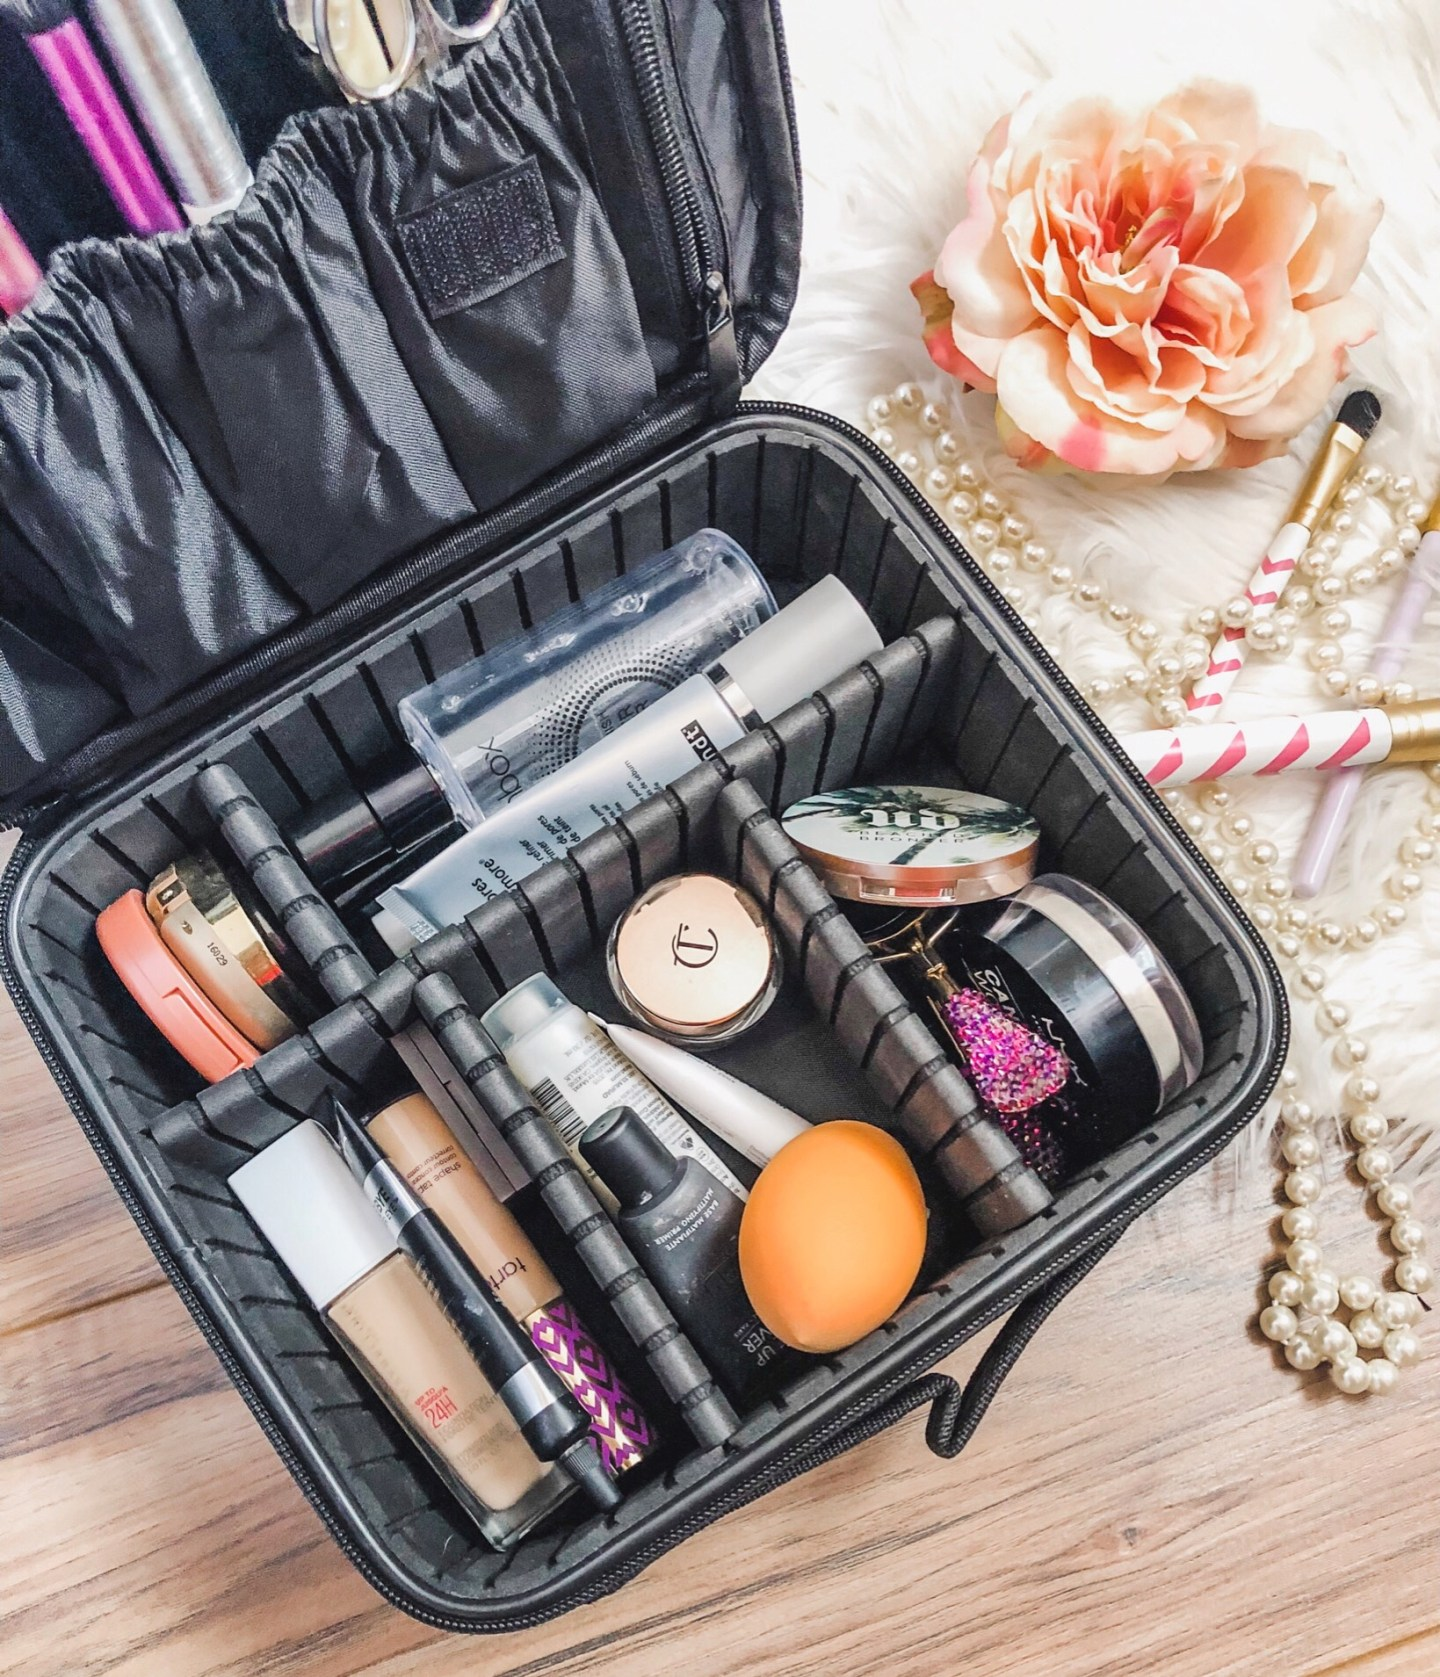 Amazon Must Haves // Recent Amazon Purchases // Travel Makeup Bag Essentials   Beauty With Lily